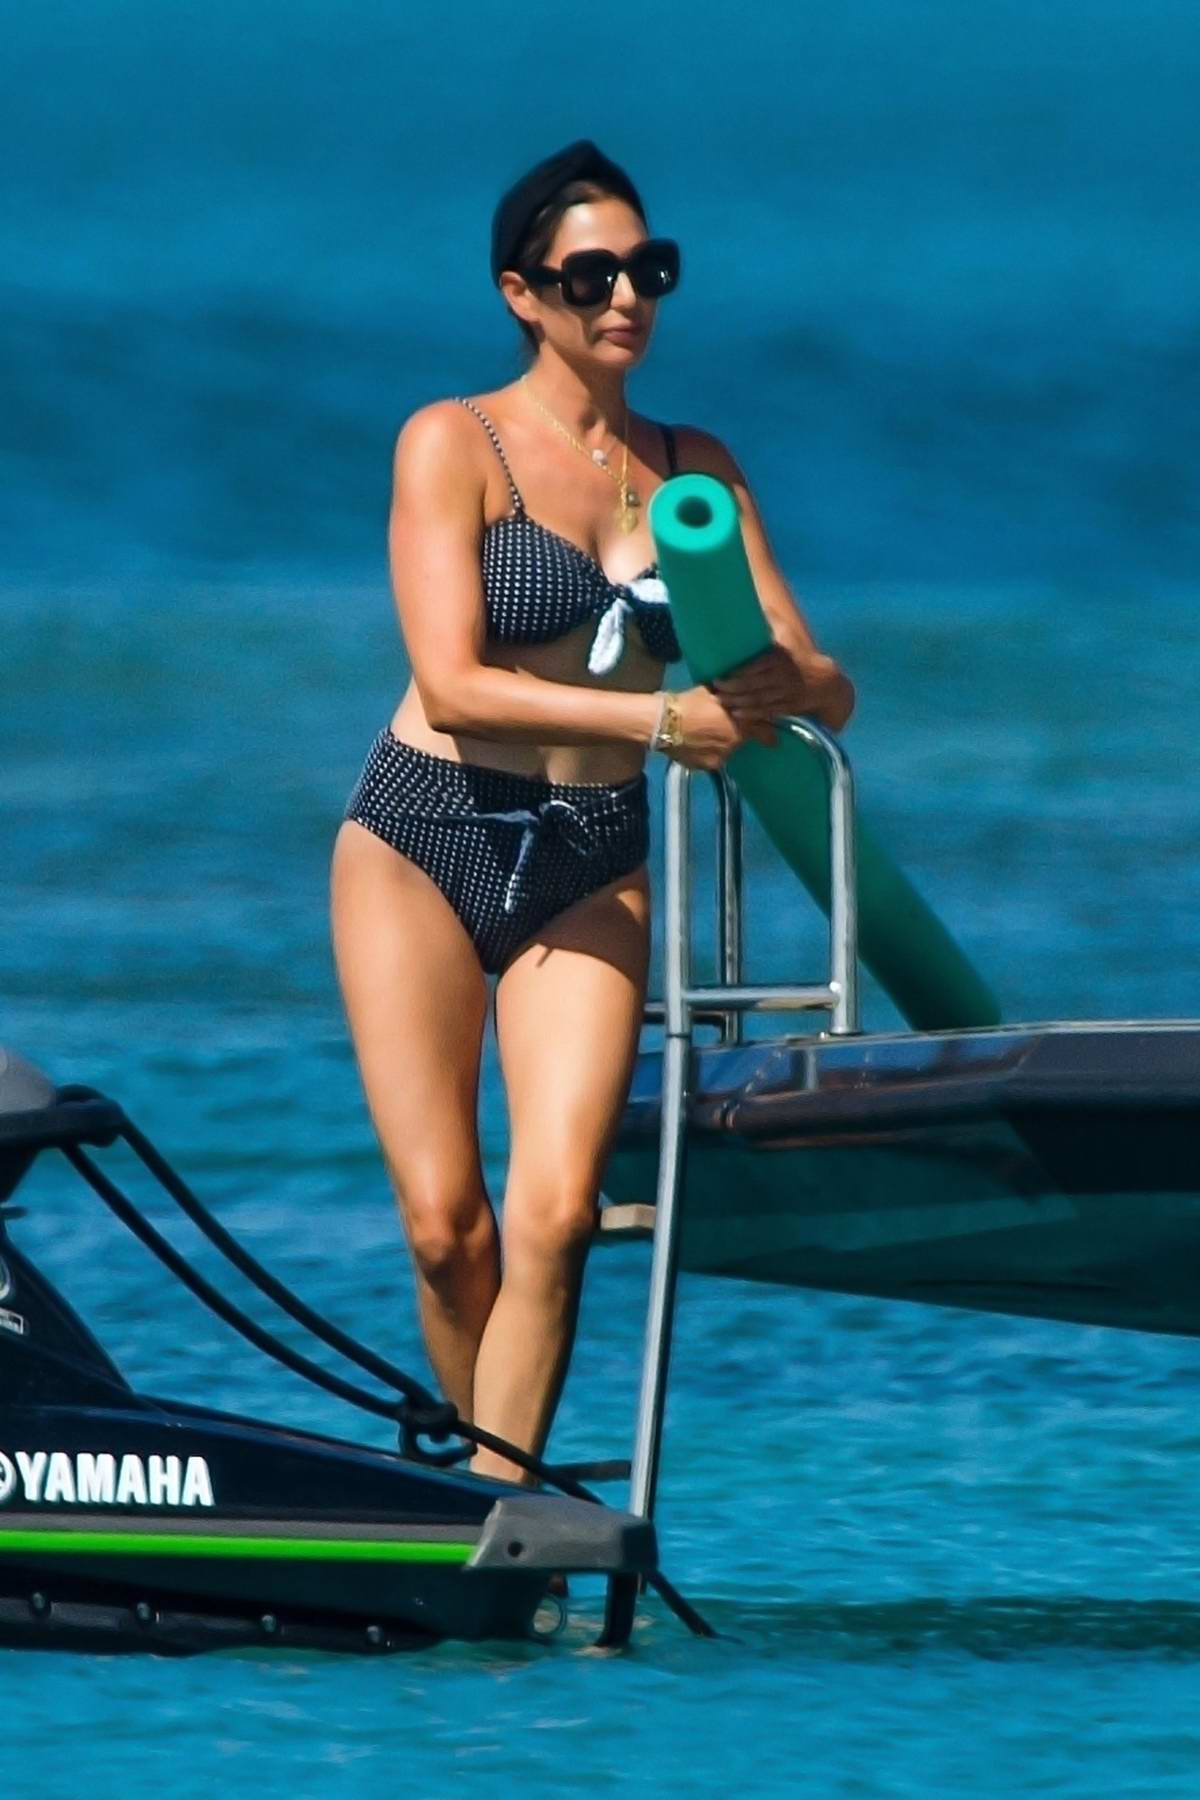 Lauren Silverman shows off her toned body in a printed bikini while relaxing on a boat in Bridgetown, Barbados